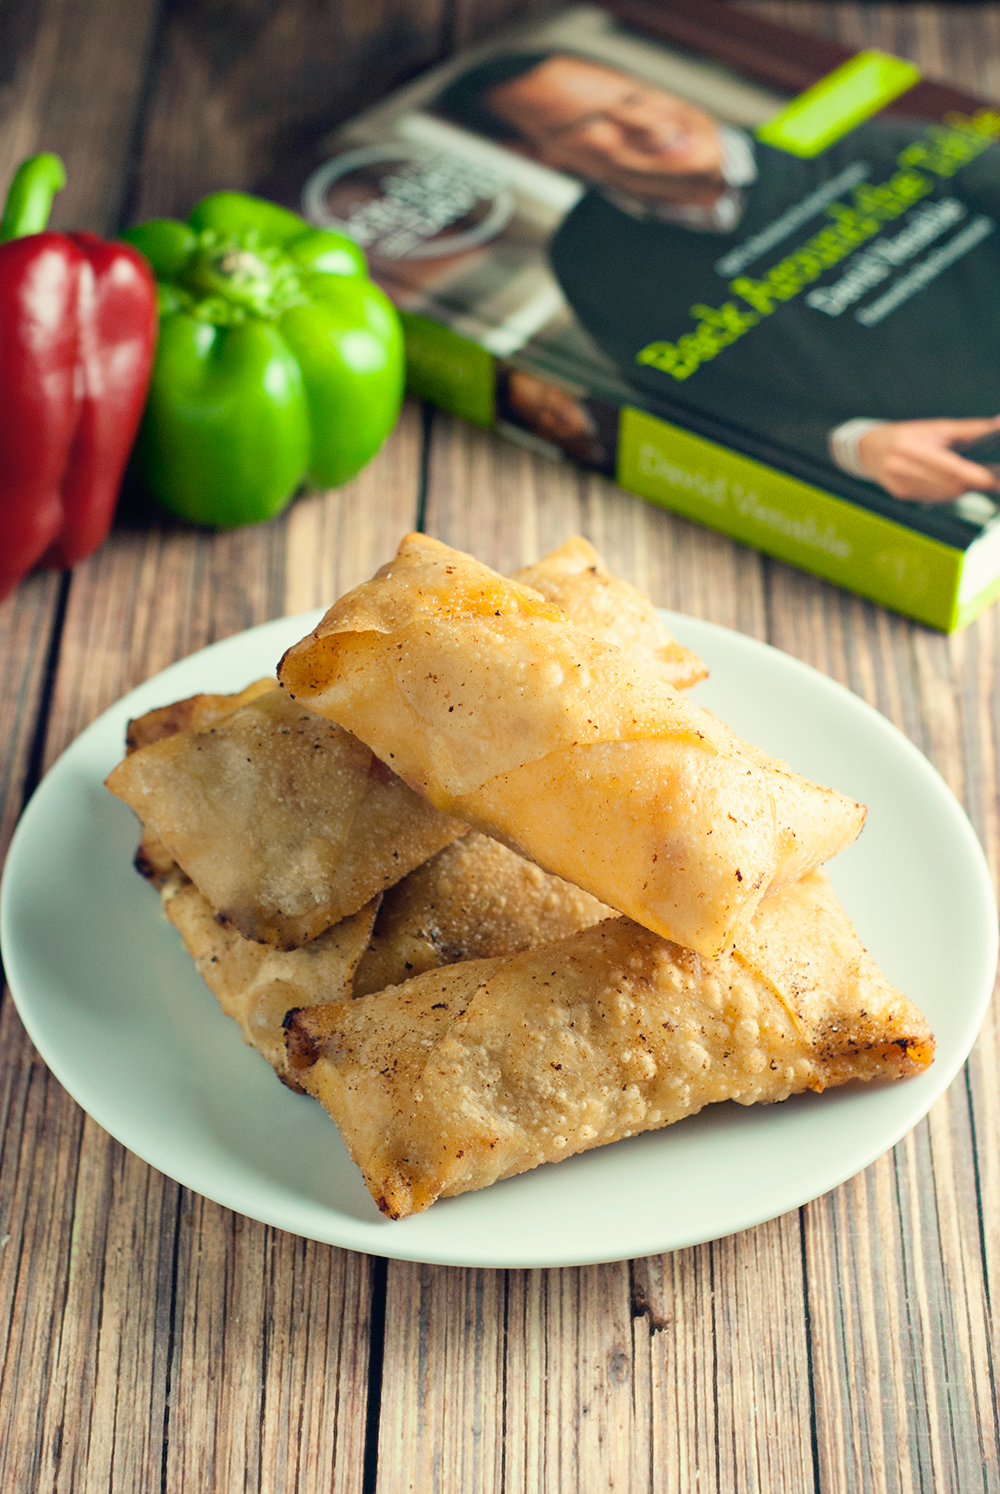 A play on the classic Philly Cheesesteak, these Chicken Cheesesteak Egg Rolls are simple to make, delicious, and ready in 30 minutes!